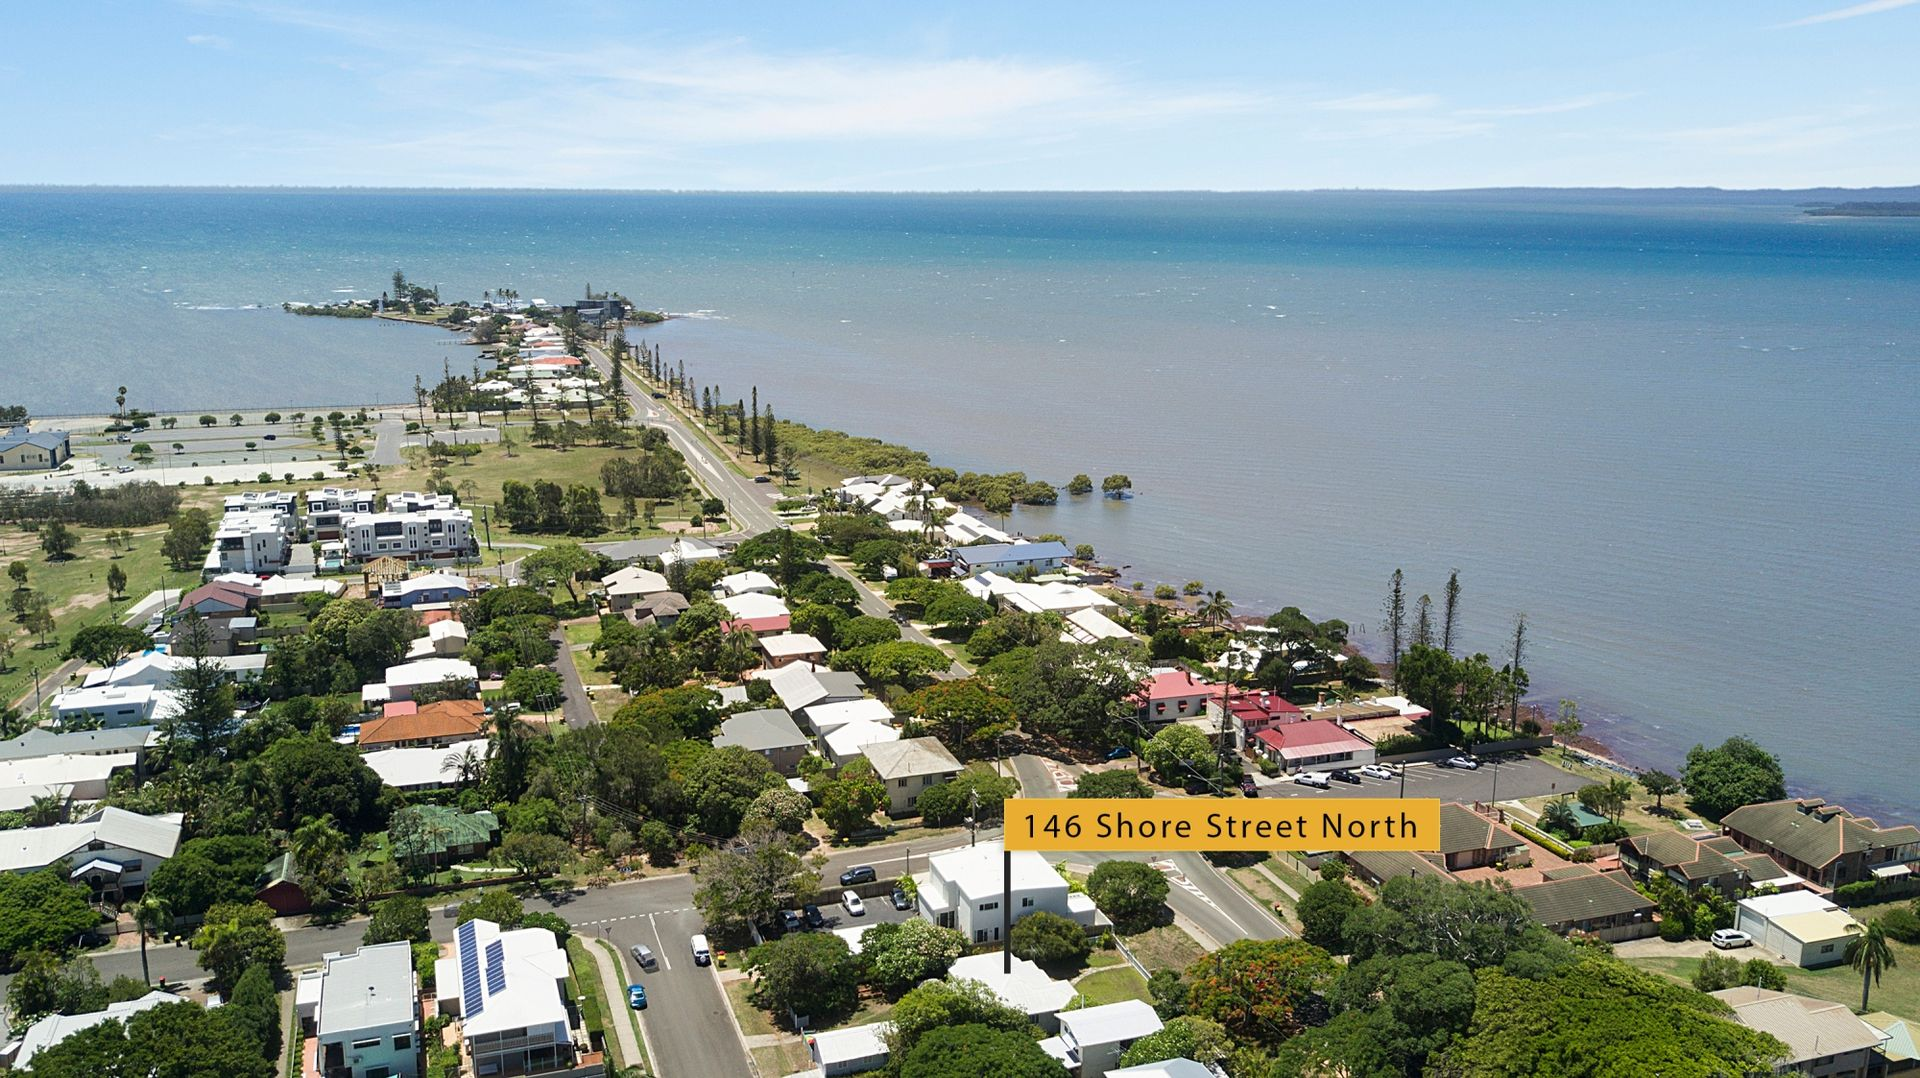 146 Shore Street North, Cleveland QLD 4163, Image 2